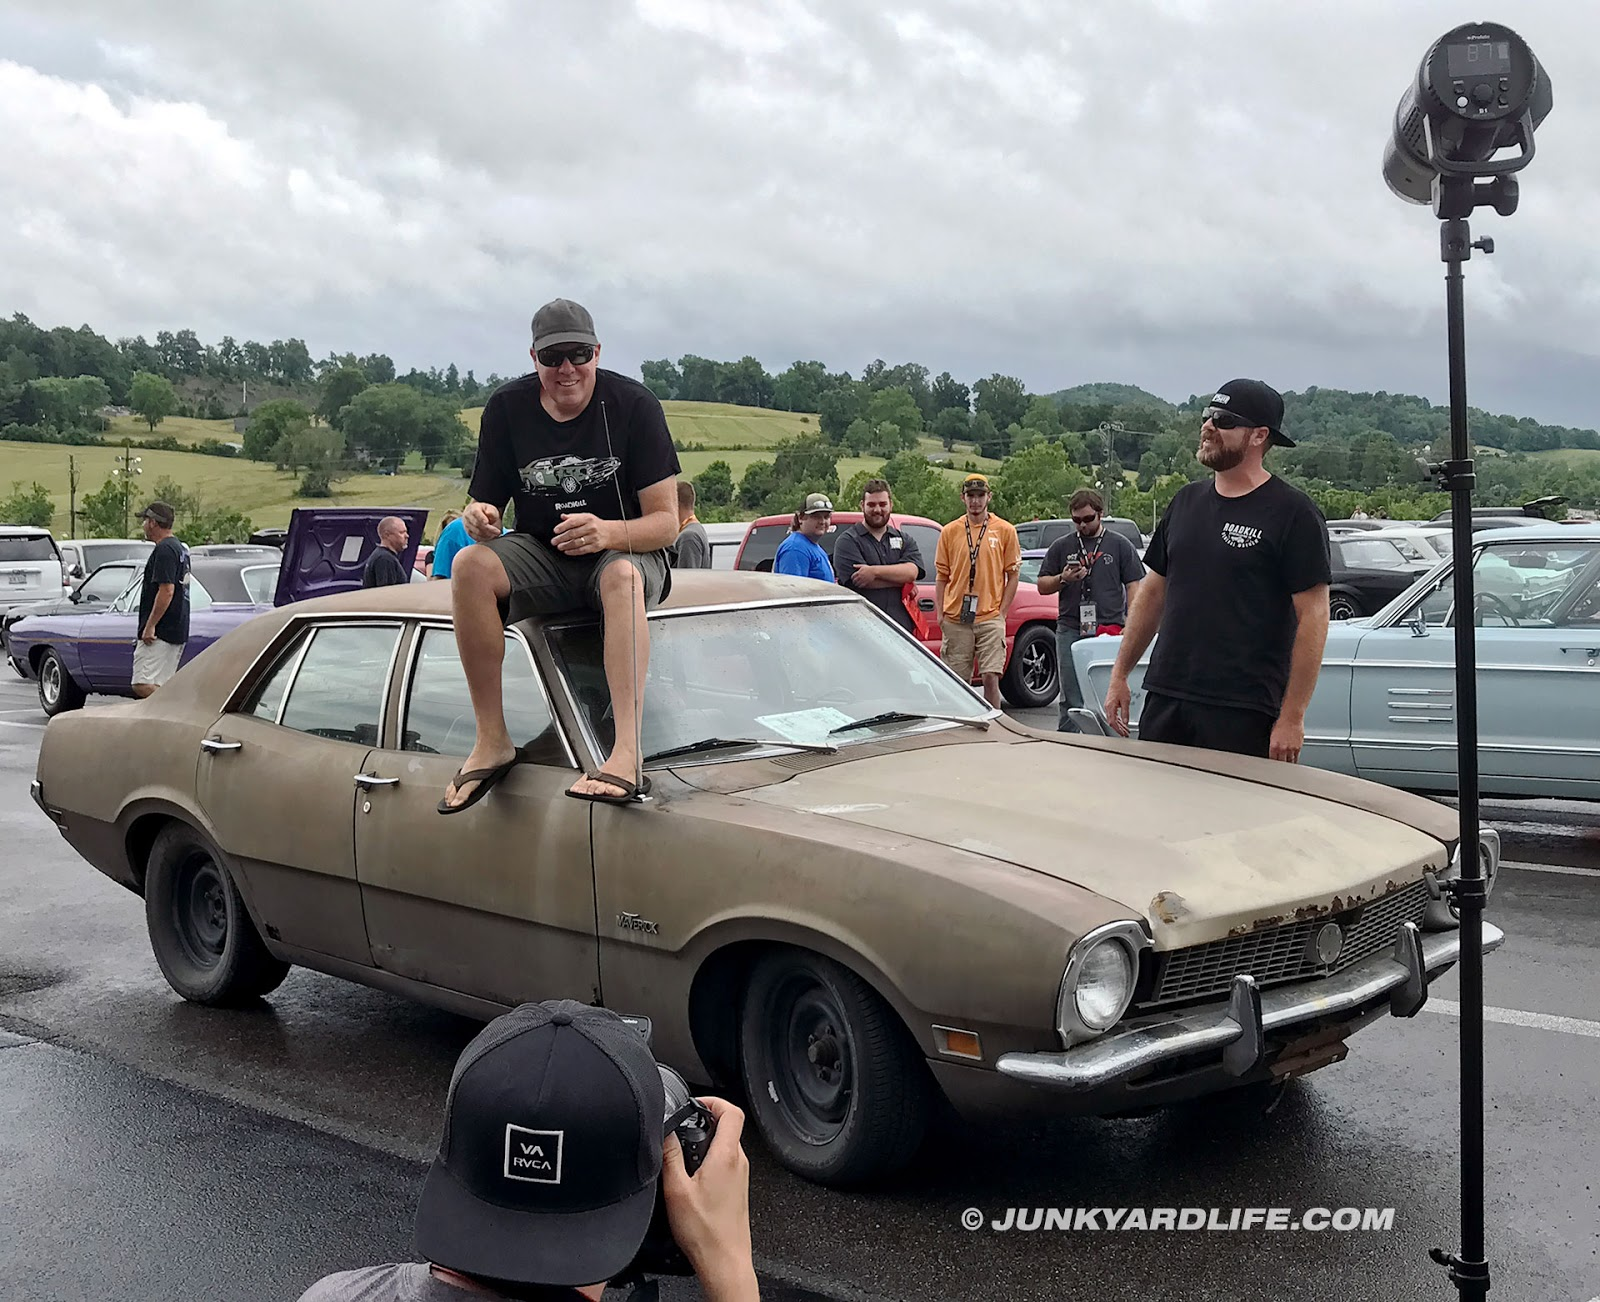 Junkyard Life: Classic Cars, Muscle Cars, Barn finds, Hot rods and